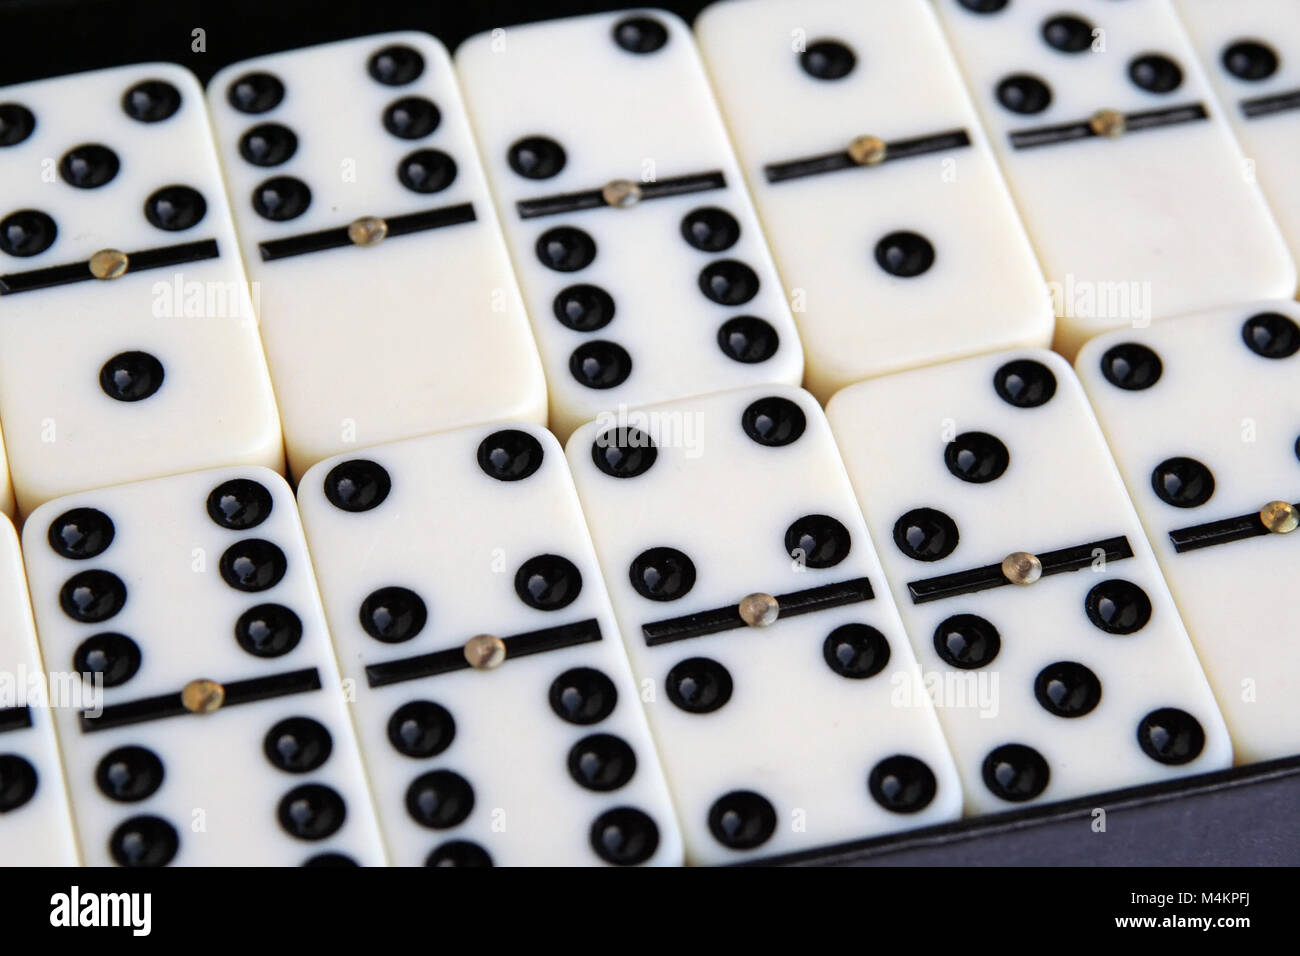 Blur Dominoes Stock Photos & Blur Dominoes Stock Images - Alamy